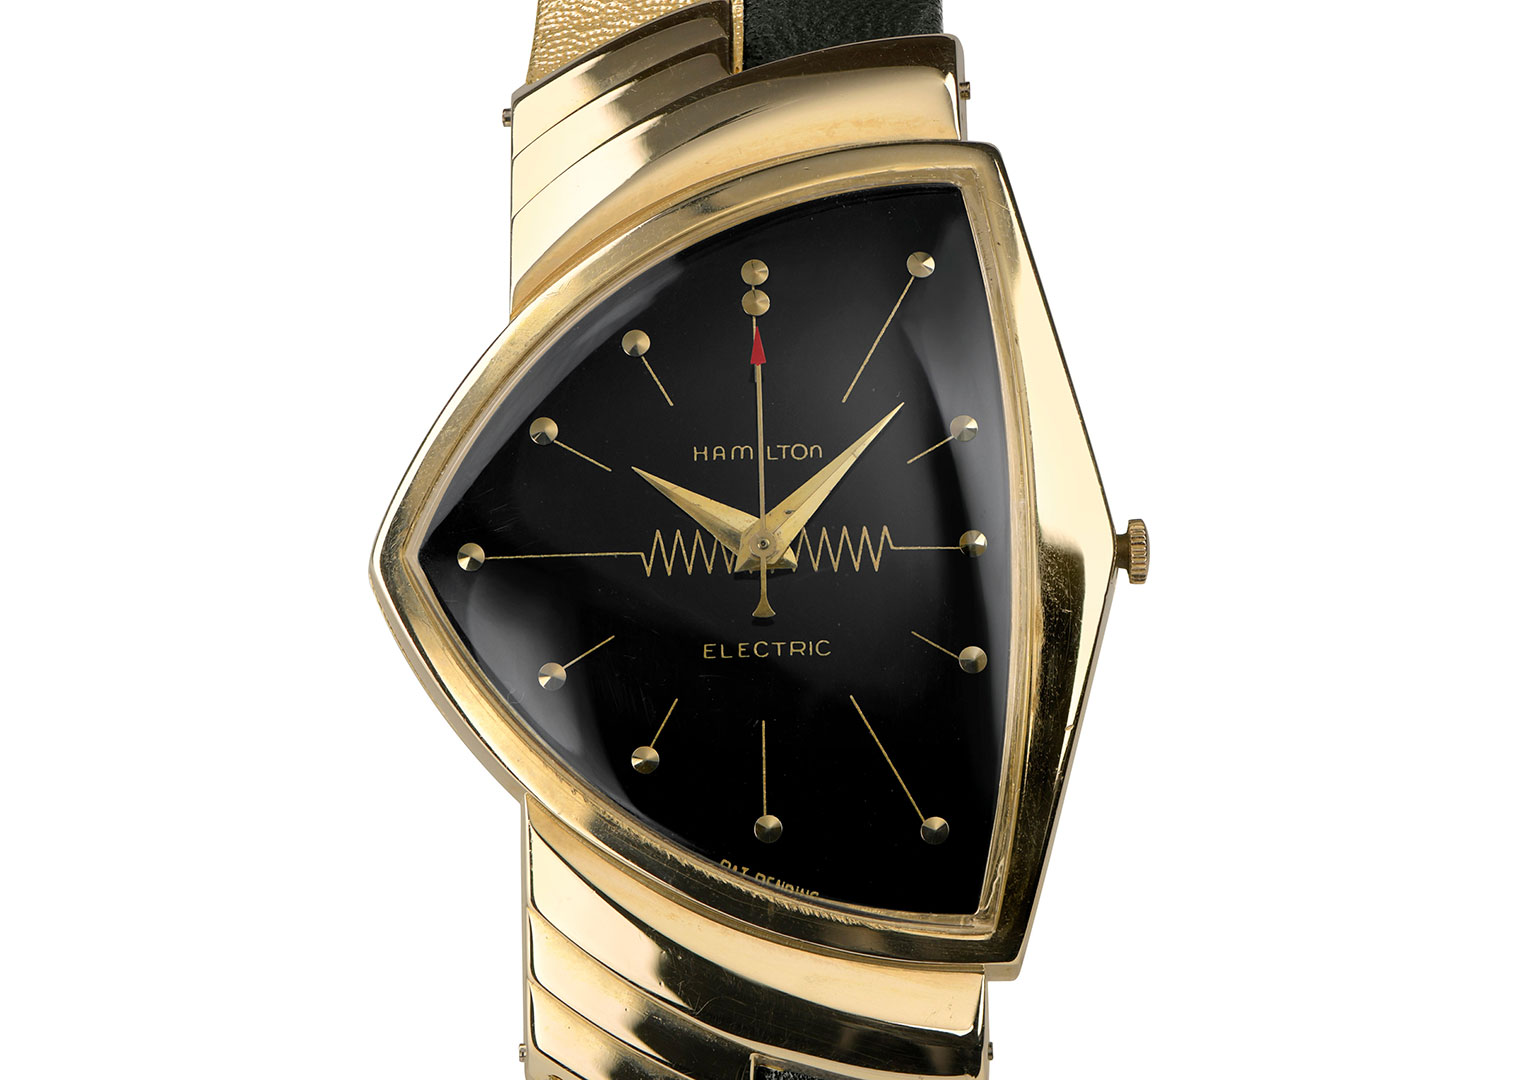 The Hamilton Ventura, released in 1957, was the first electric watch